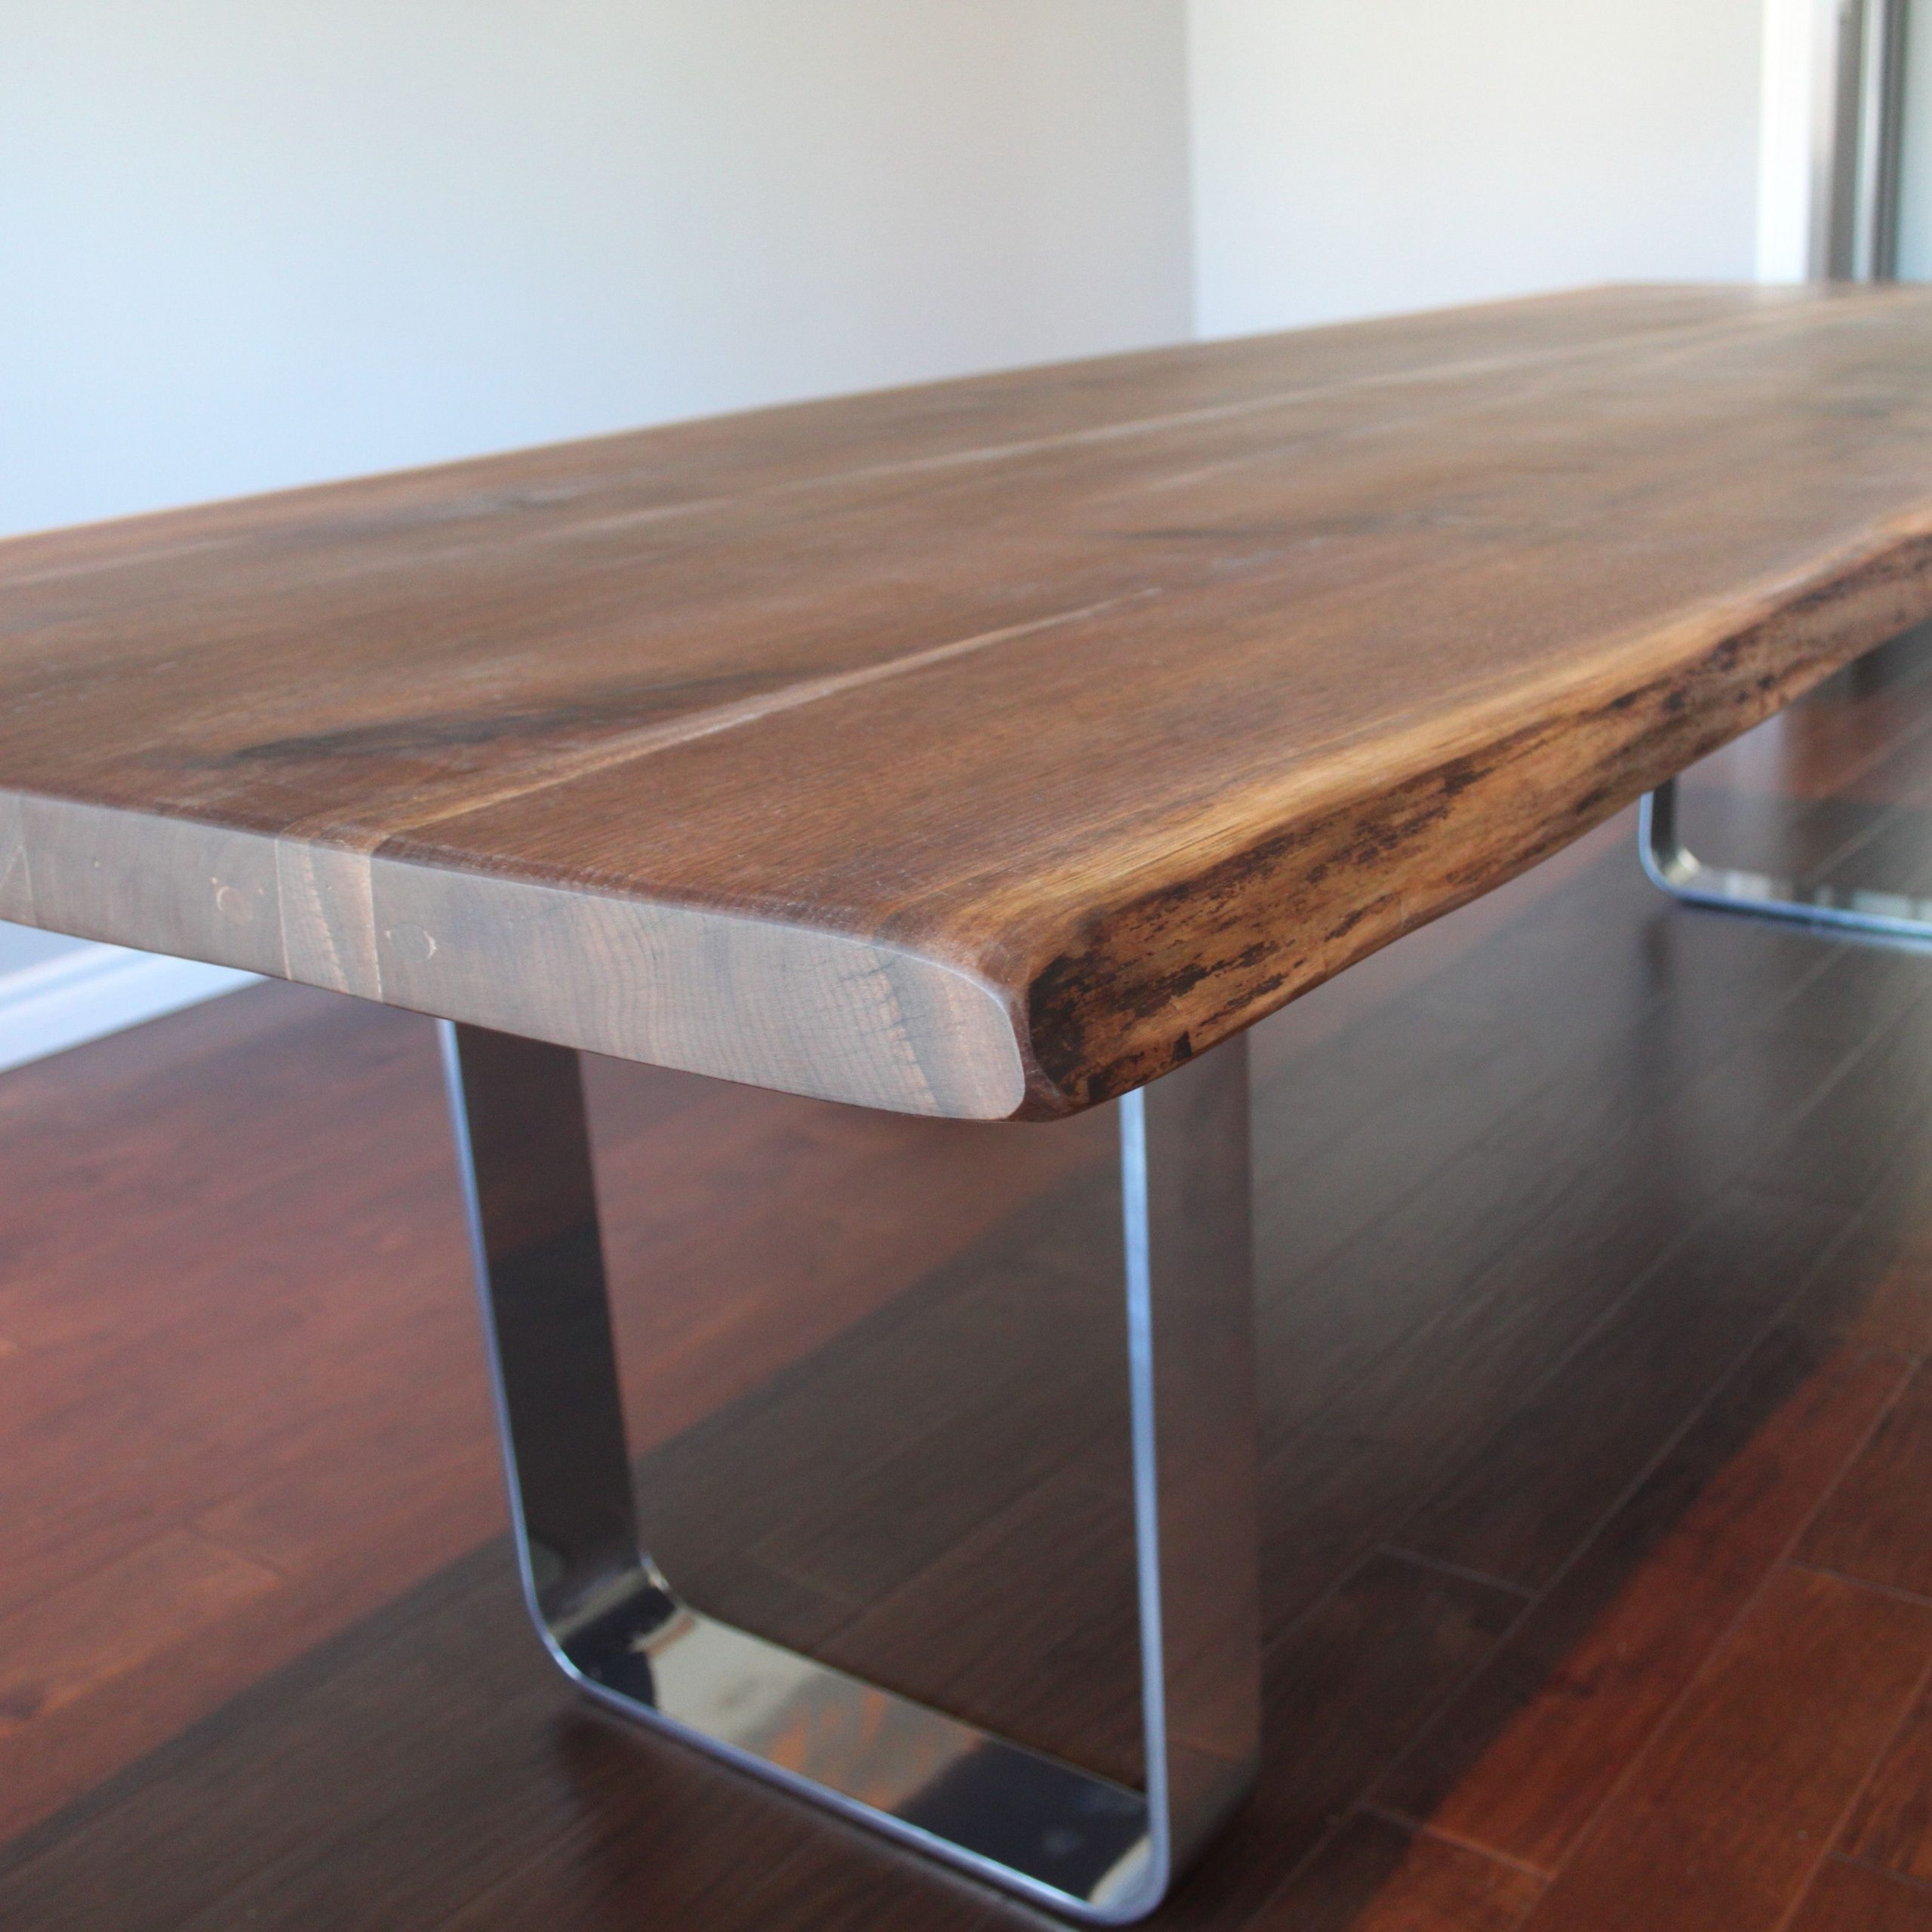 Living Wood Regarding Latest Walnut Finish Live Edge Wood Contemporary Dining Tables (View 12 of 25)